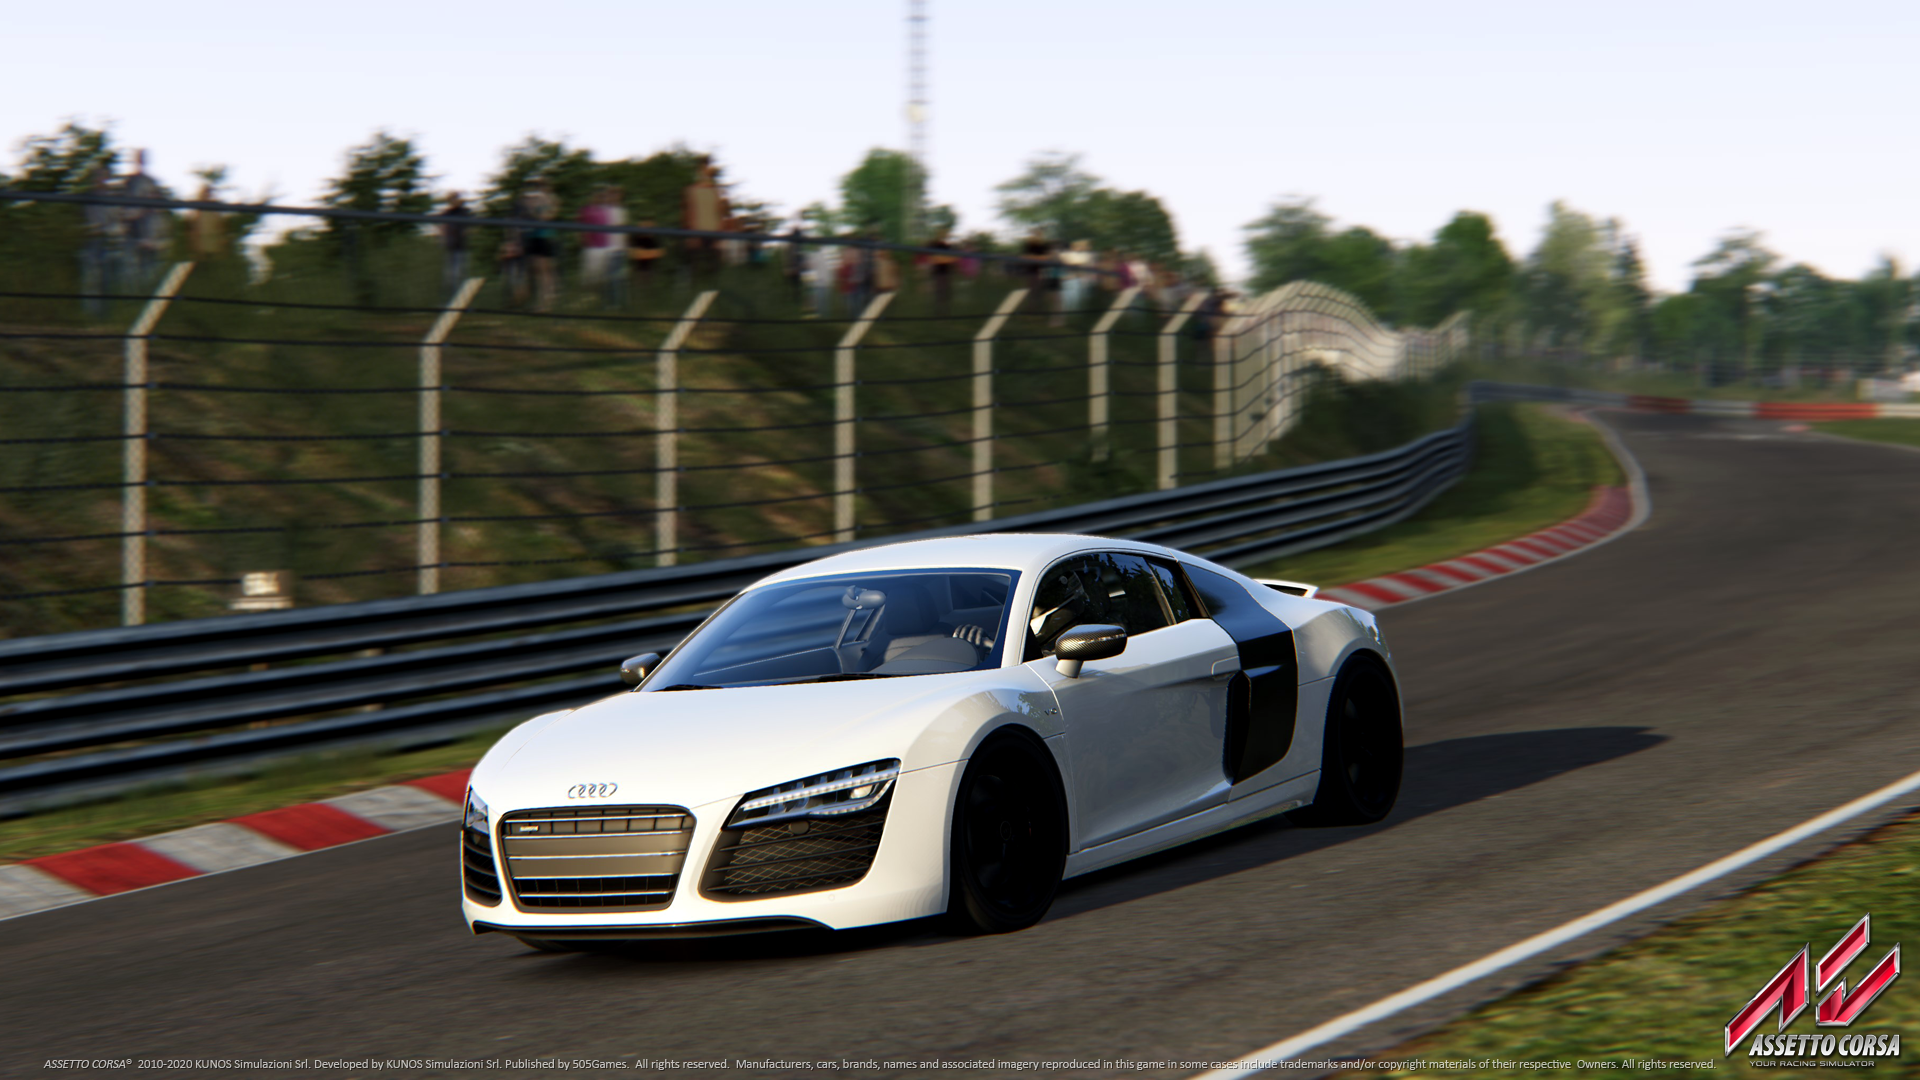 Assetto Corsa: Are PS4 and Xbox One ready for a true driving